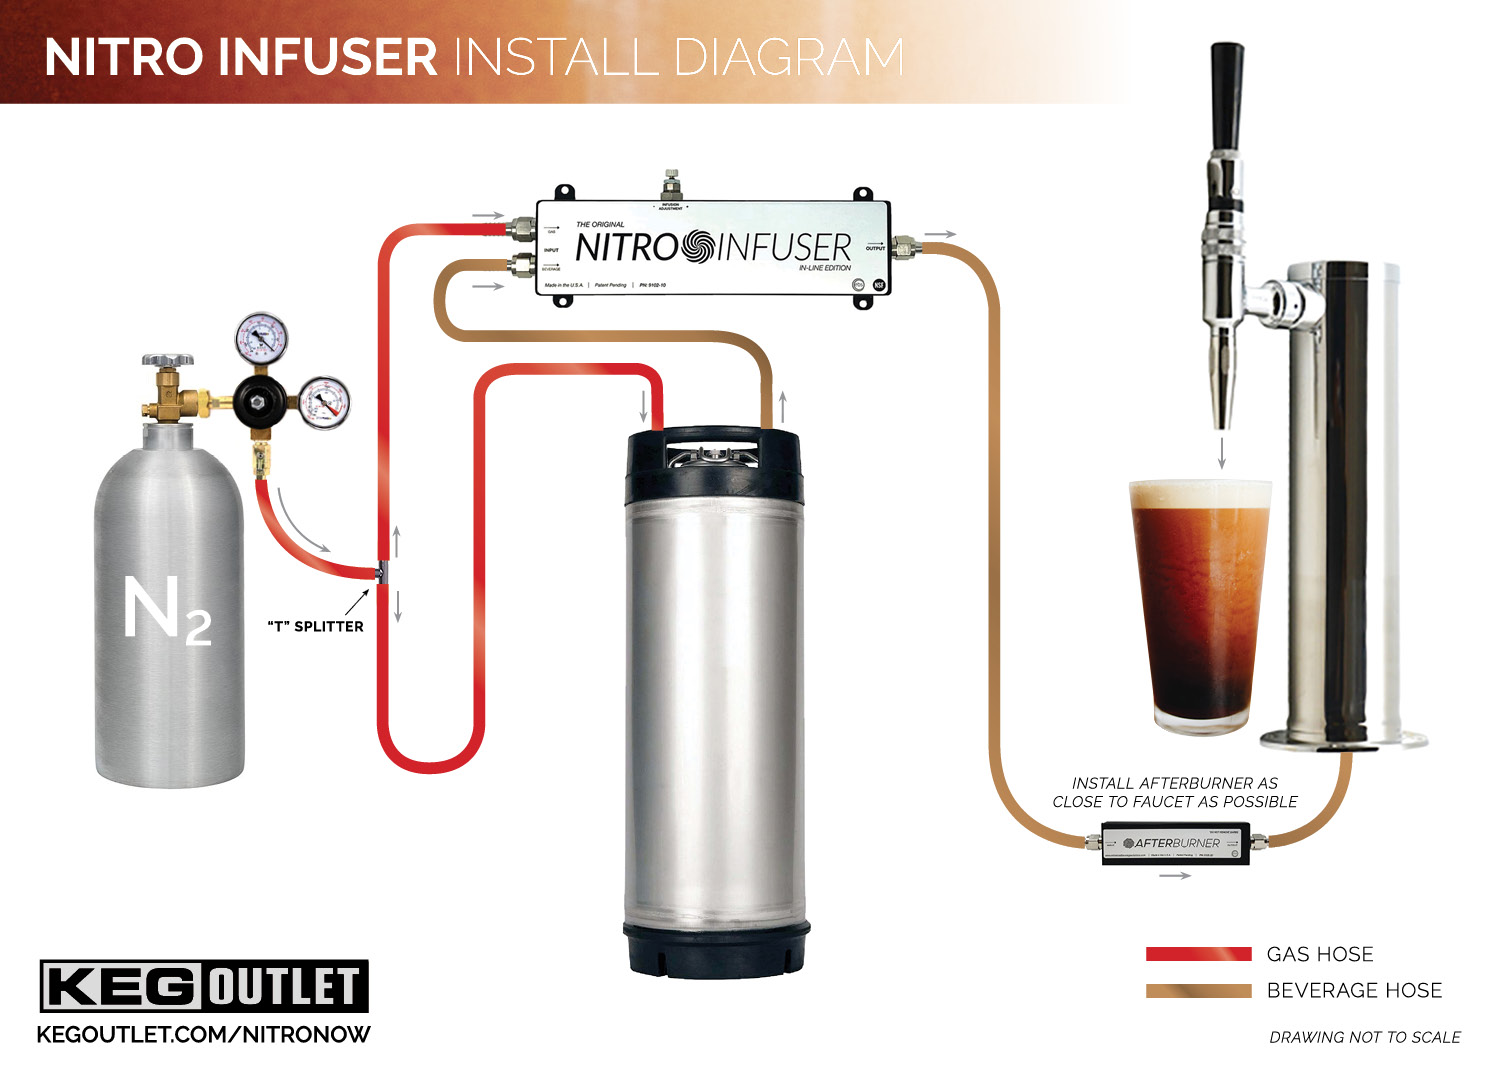 Nitro Infuser with AfterBurner Installation Diagram